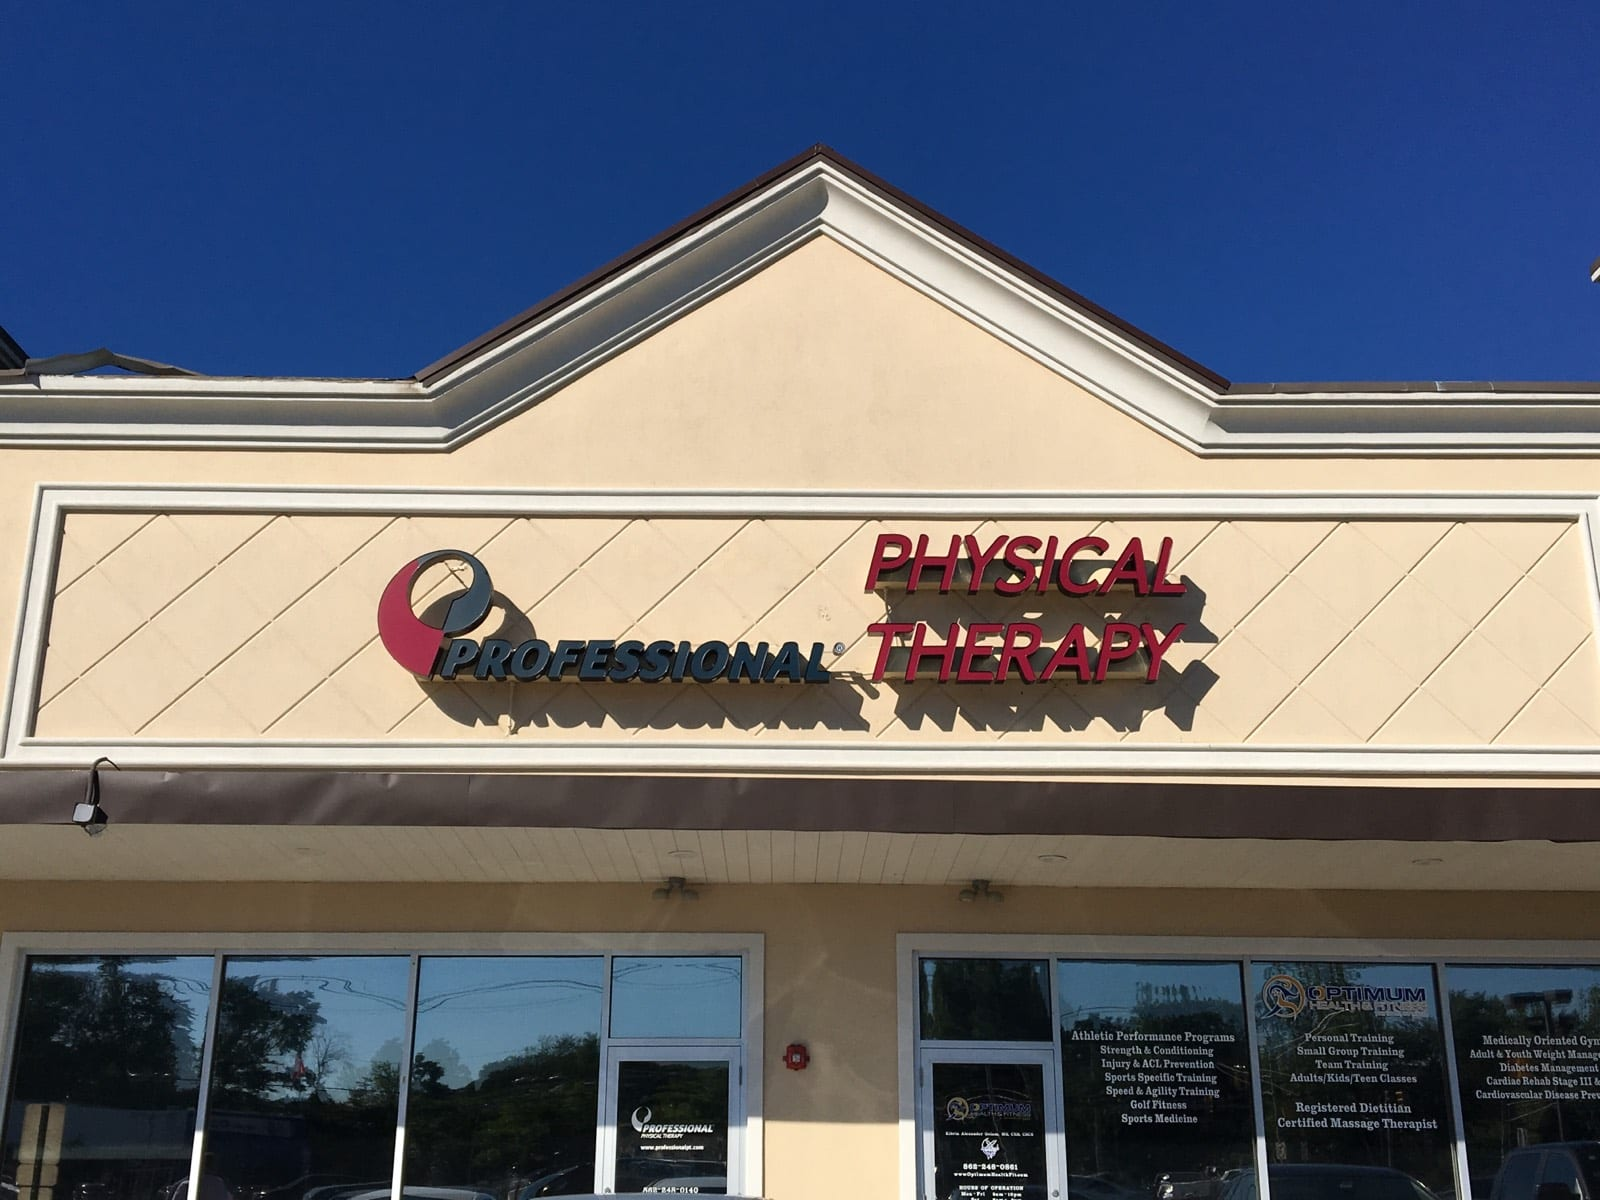 Here is an image of the exterior of our physical therapy clinic in Pompton Plains, New Jersey.